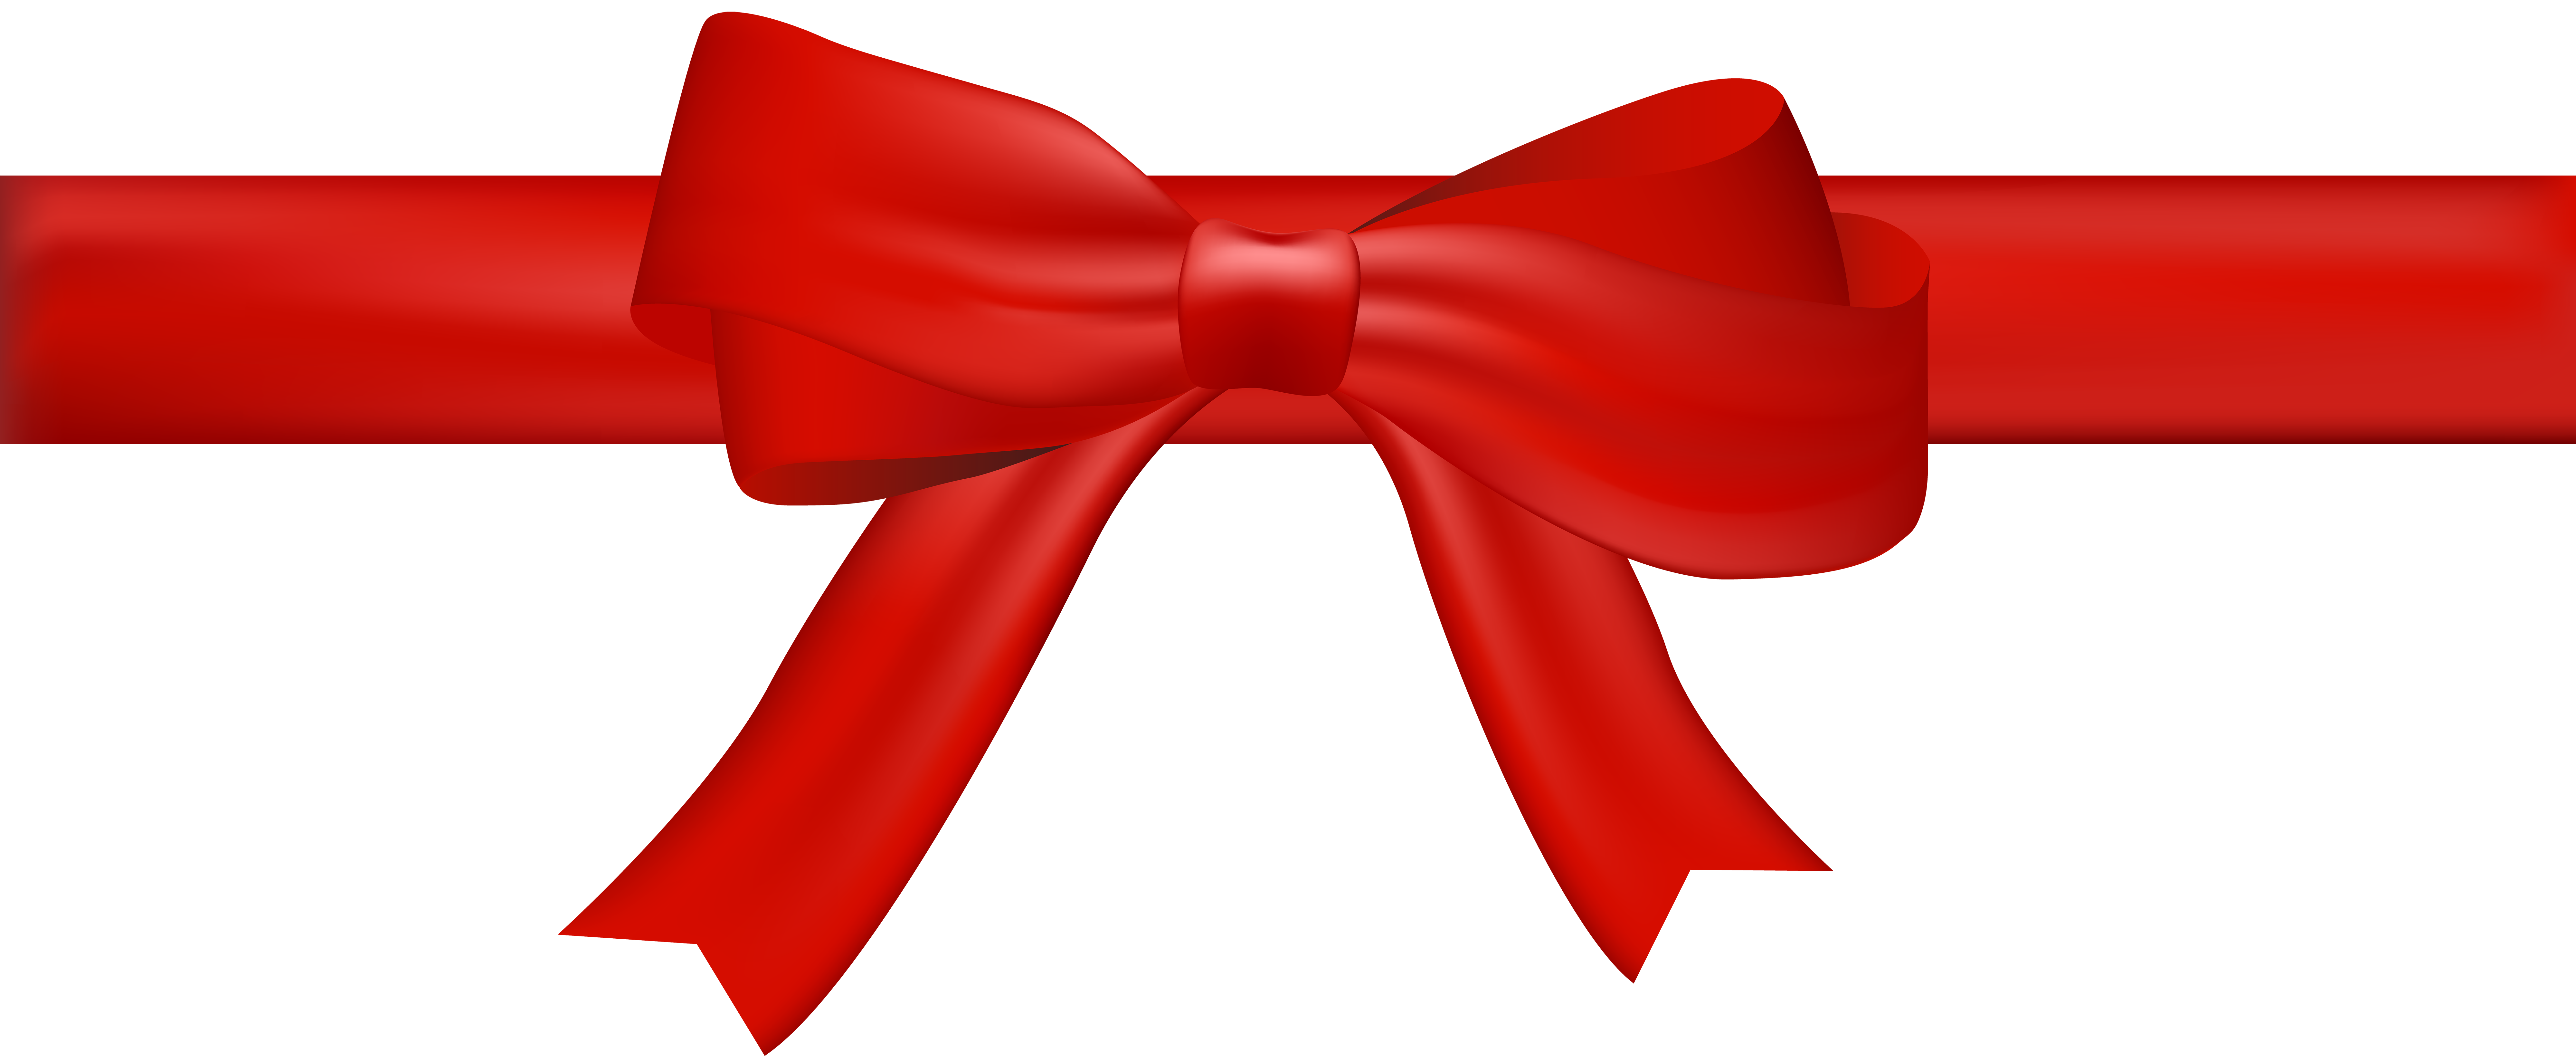 Bow Red Transparent Clip Art Image.